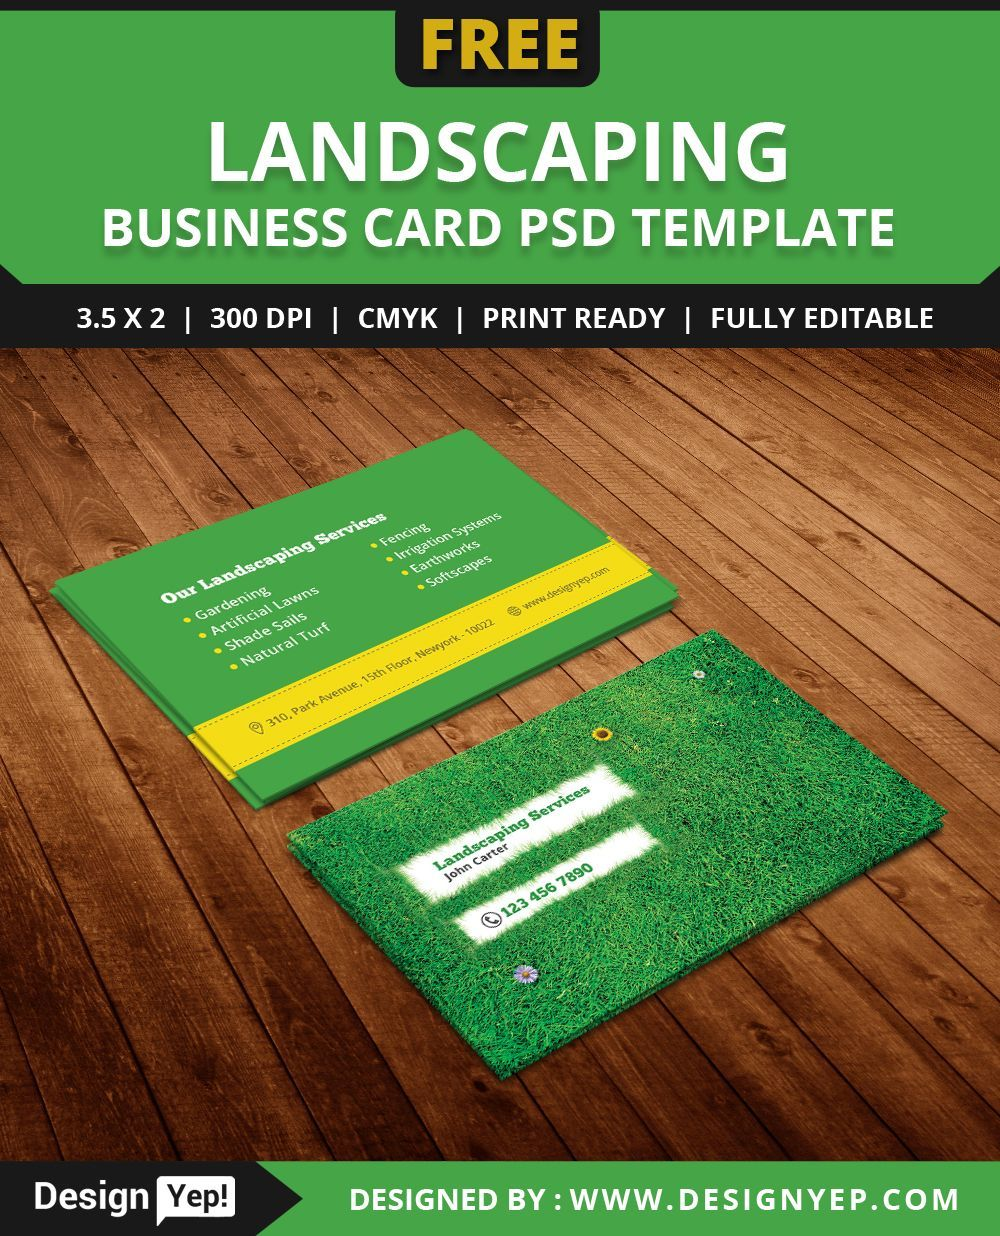 Free Landscaping Business Card Template Psd Free Business With Gardening Business Card Lawn Care Business Cards Landscaping Business Cards Lawn Care Business